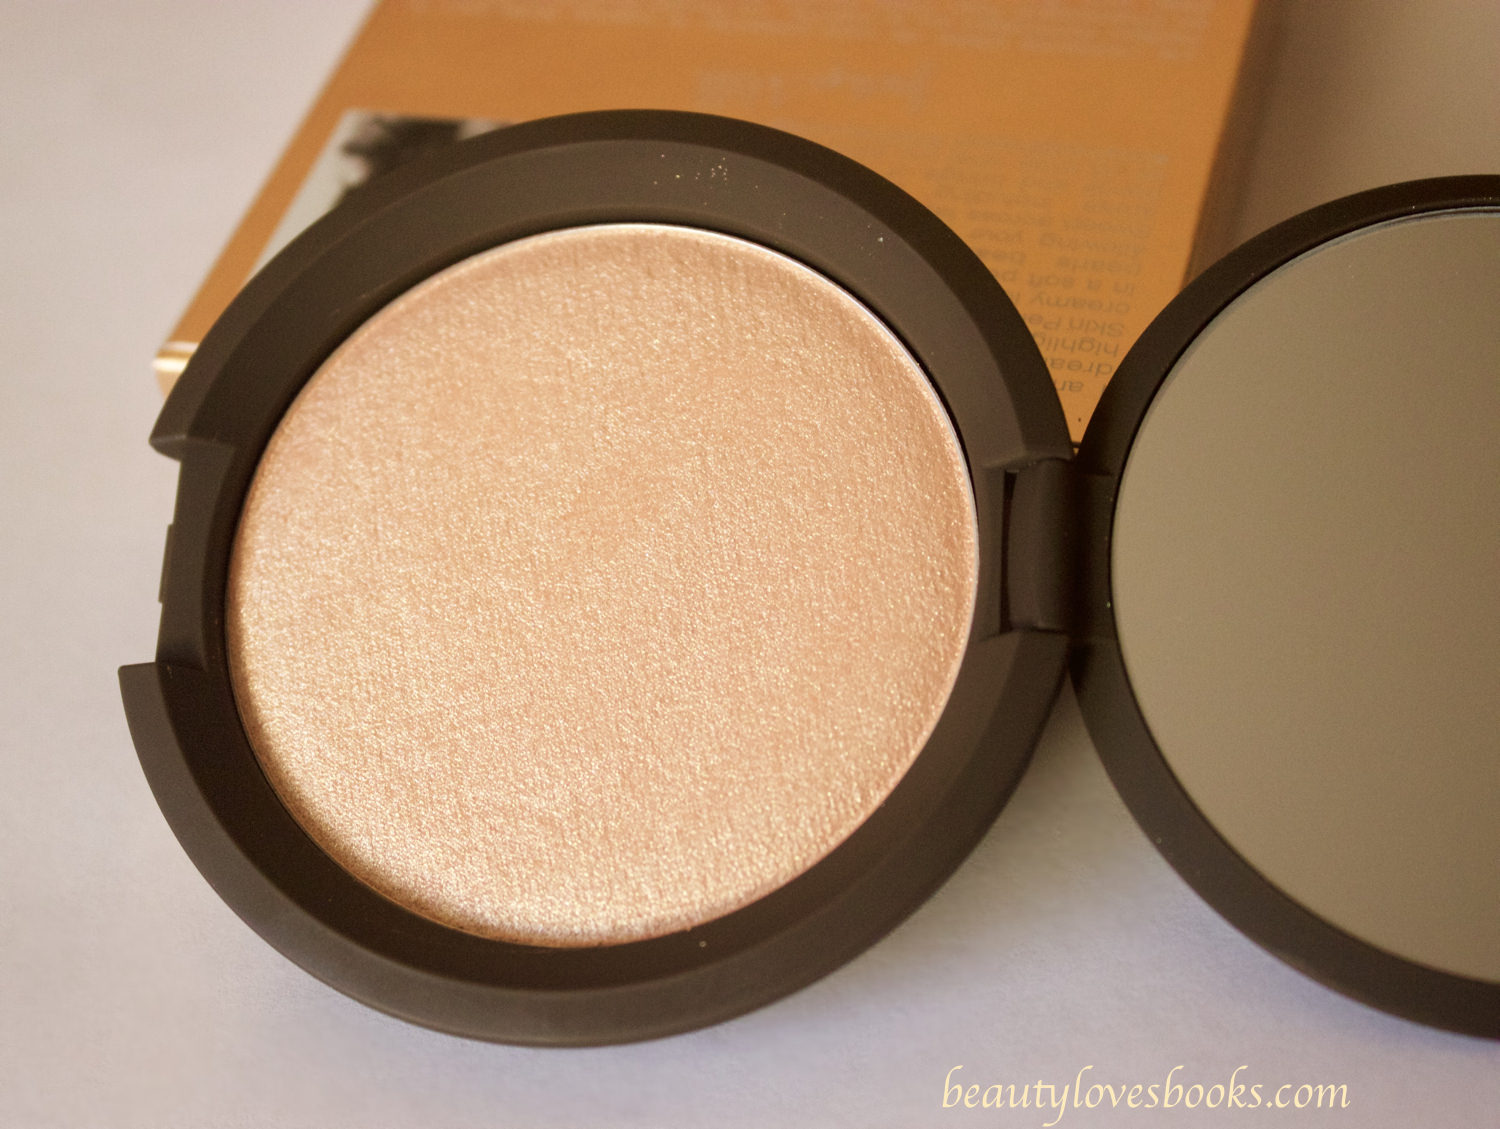 Becca Jacklyn Hill Shimmering skin perfector in Champagne pop